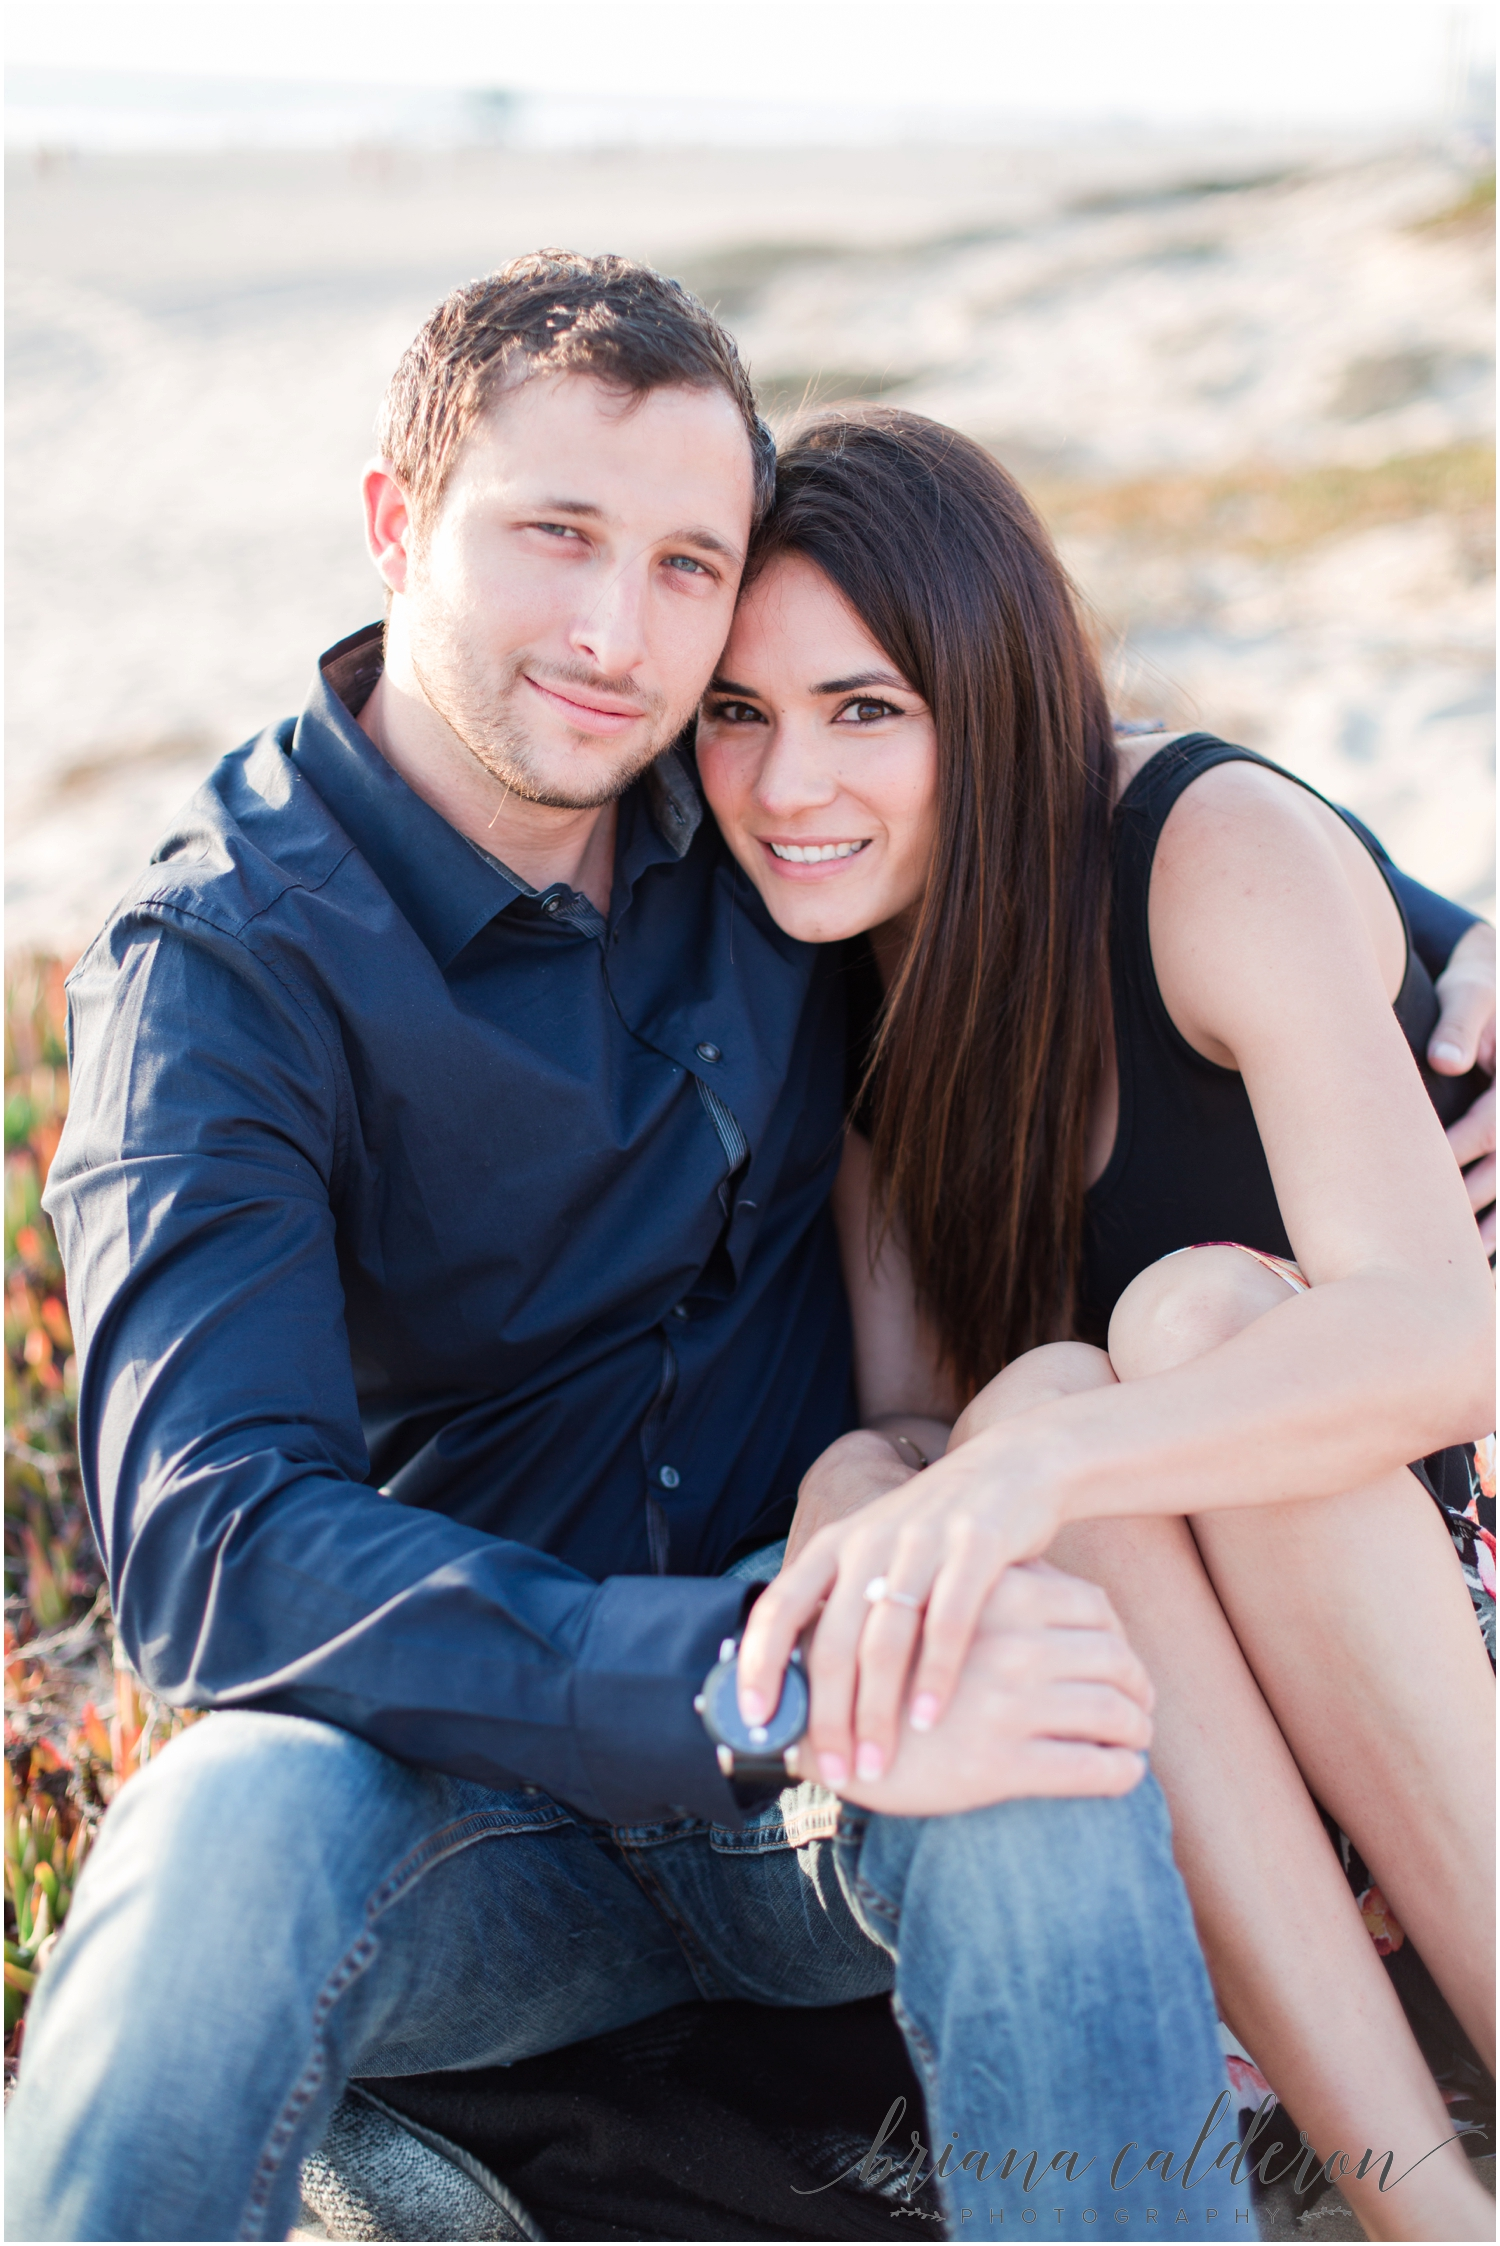 LA Beach Engagement Photos by Briana Calderon Photography_0818.jpg